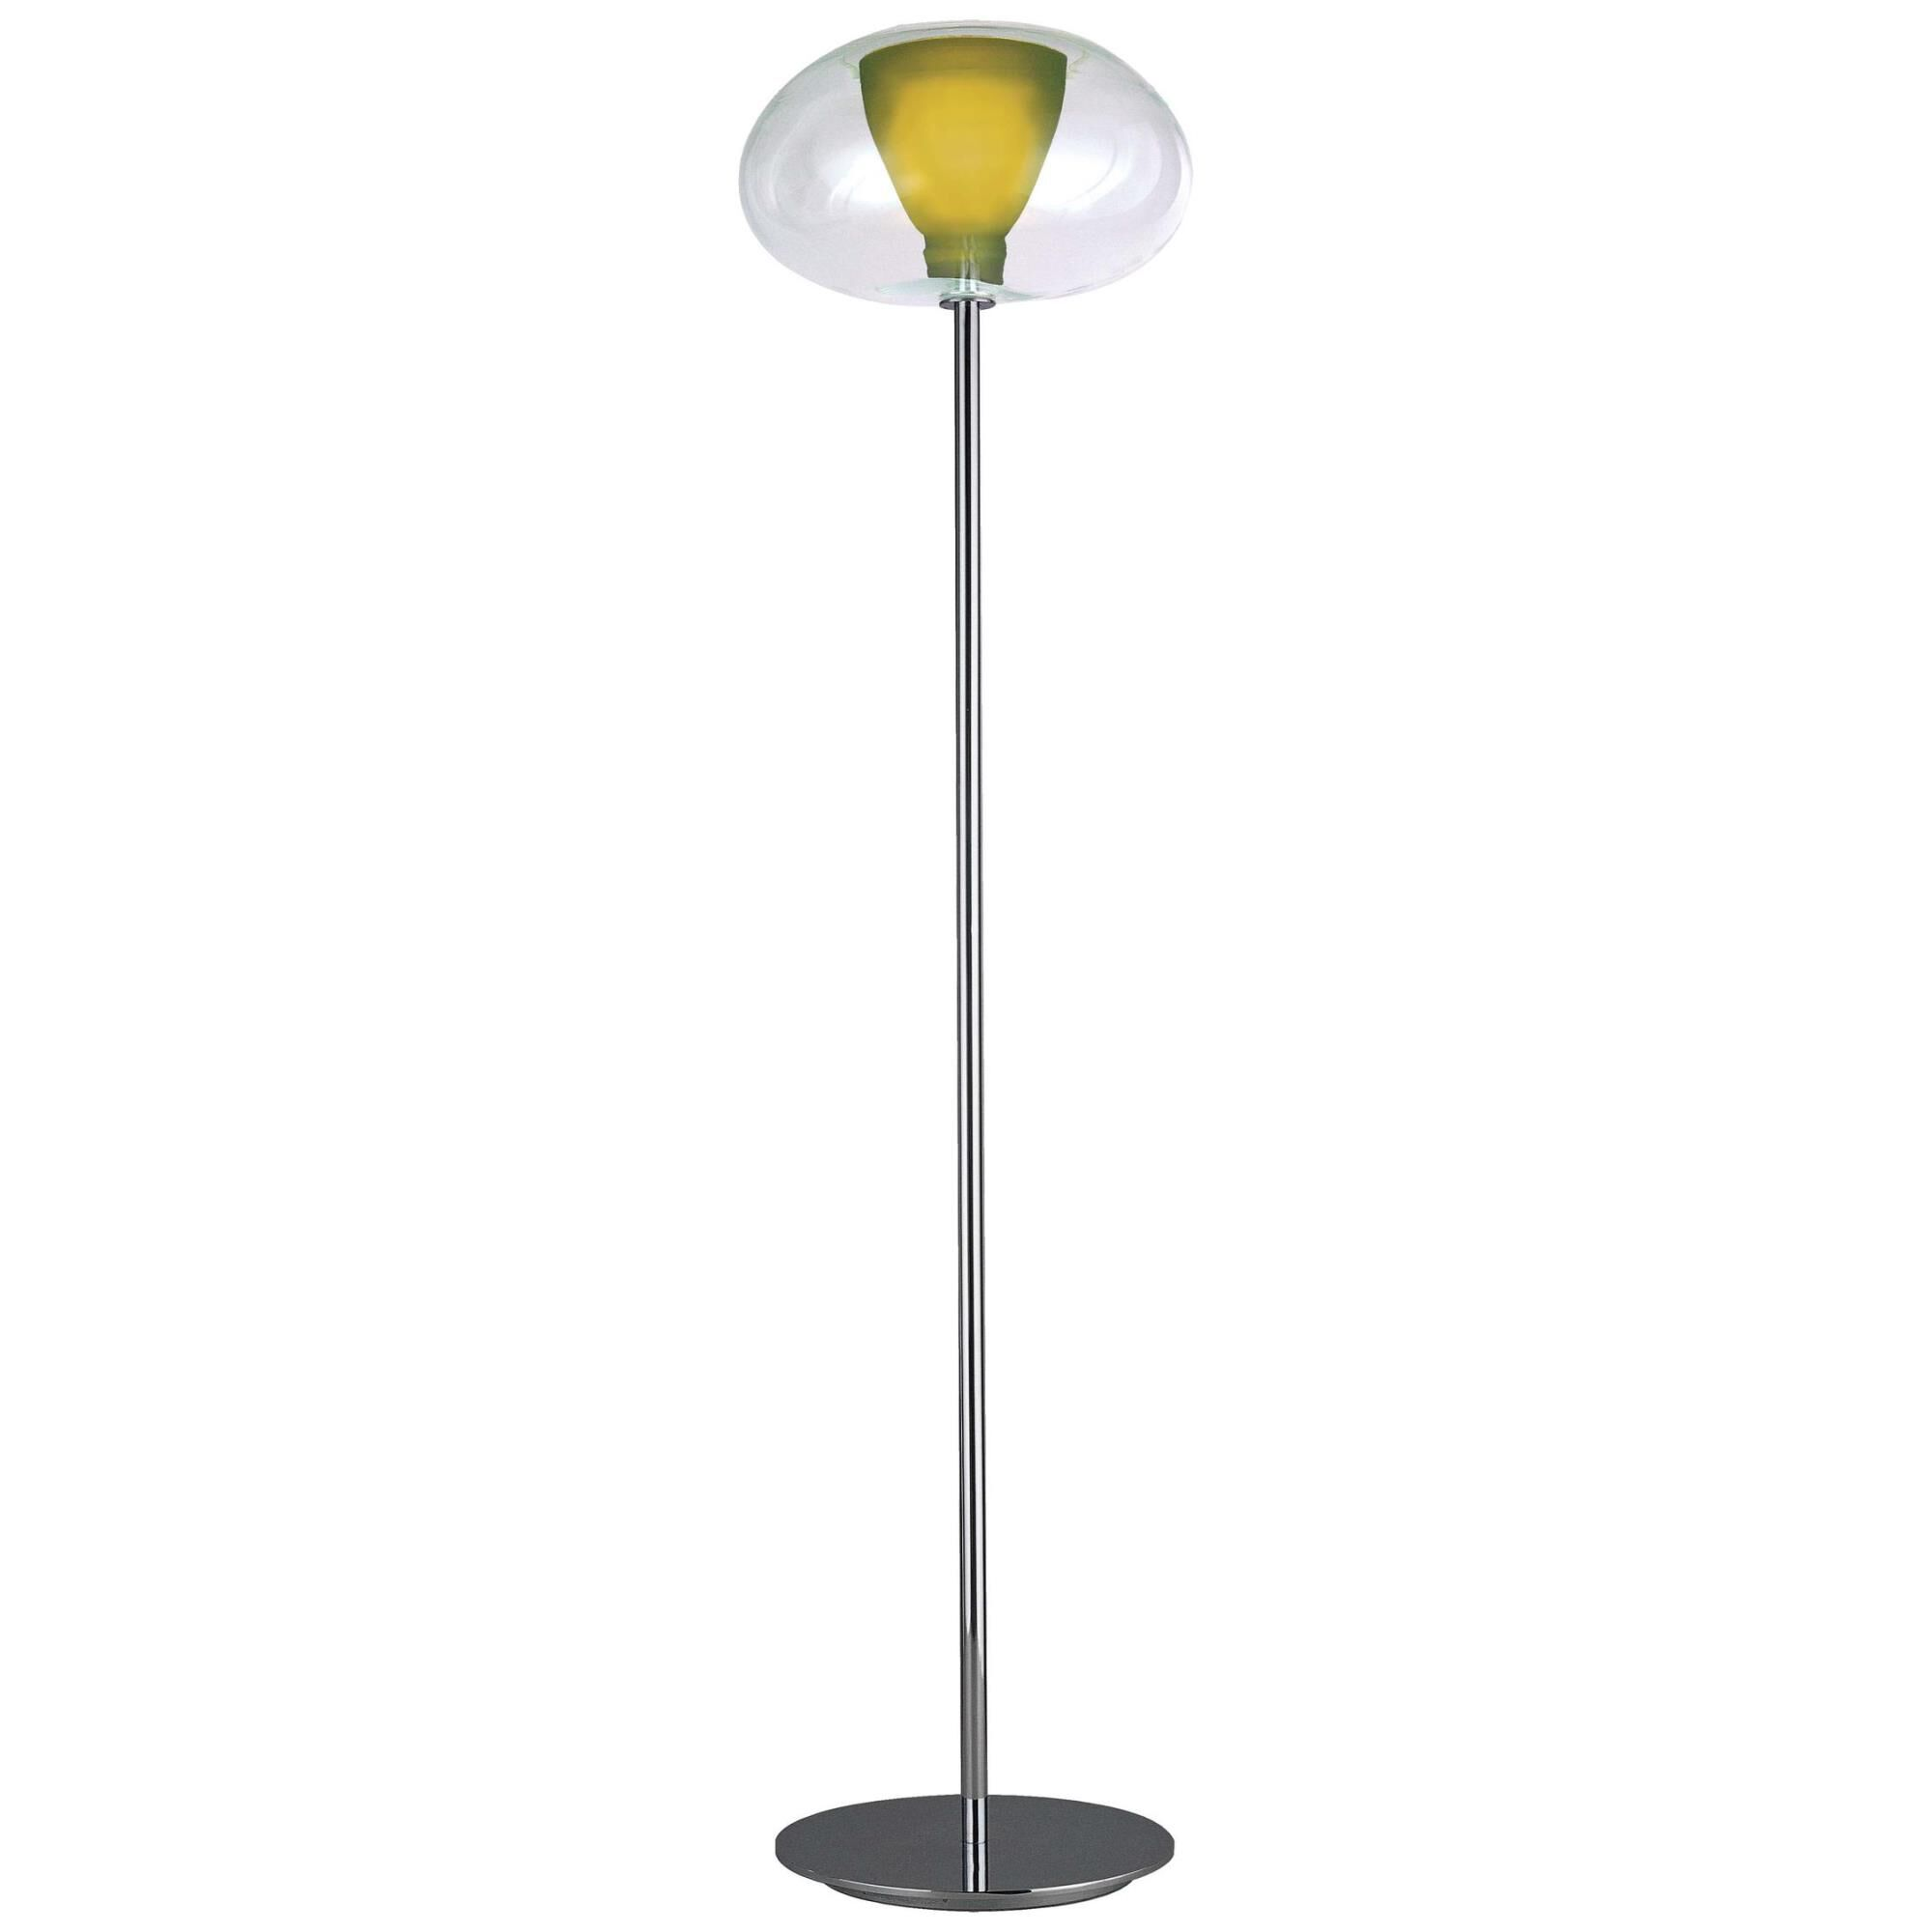 Kovacs Soft 68 Inch Torchiere Lamp Soft - P3806-077 - Blown Glass